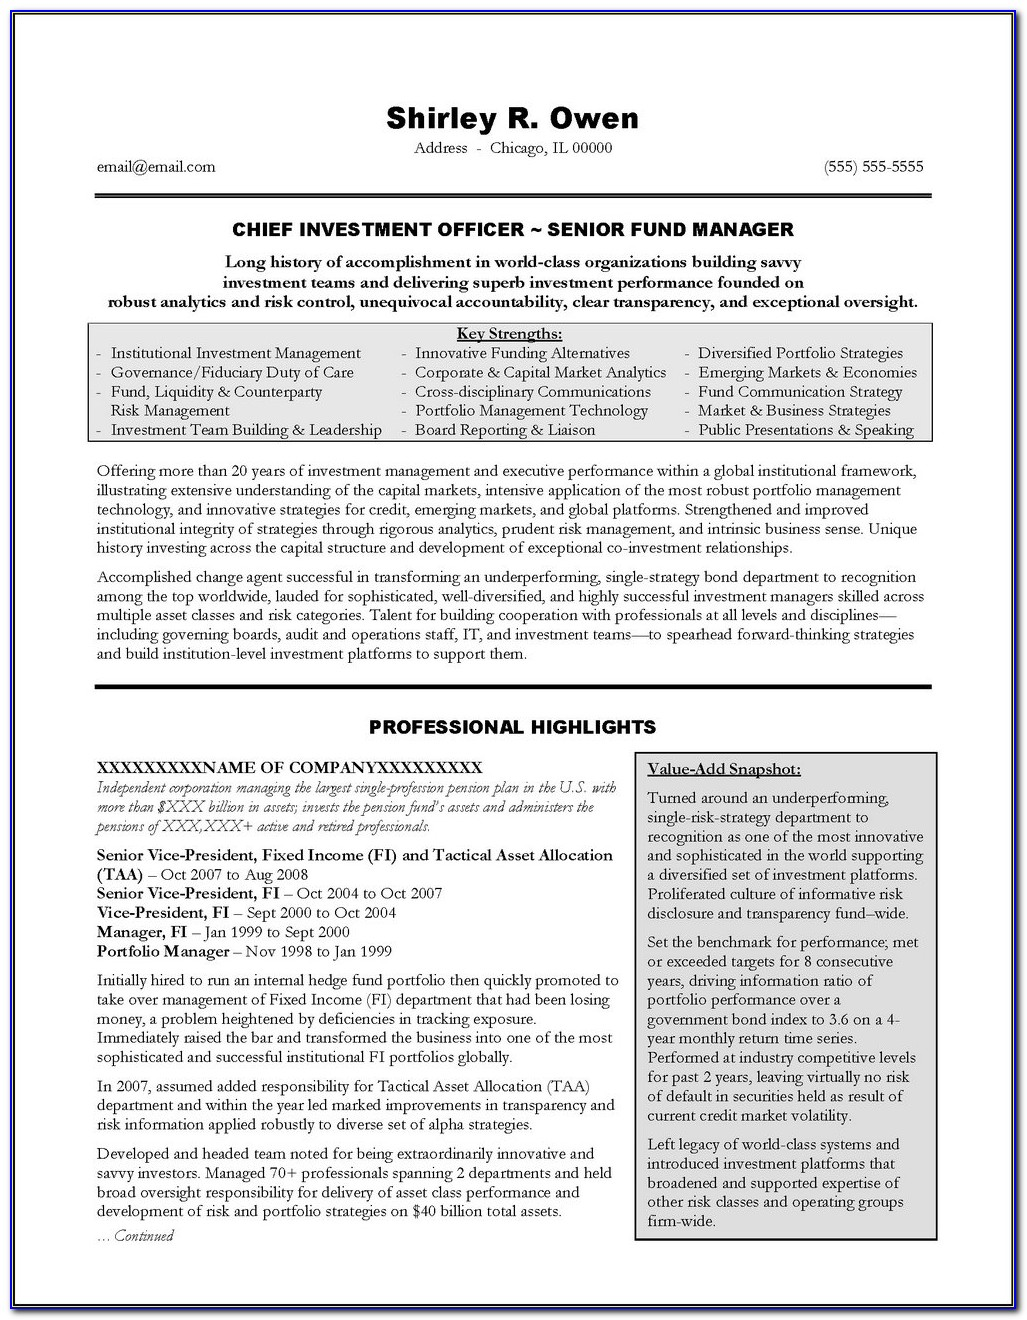 Curriculum Vitae Examples For Executives